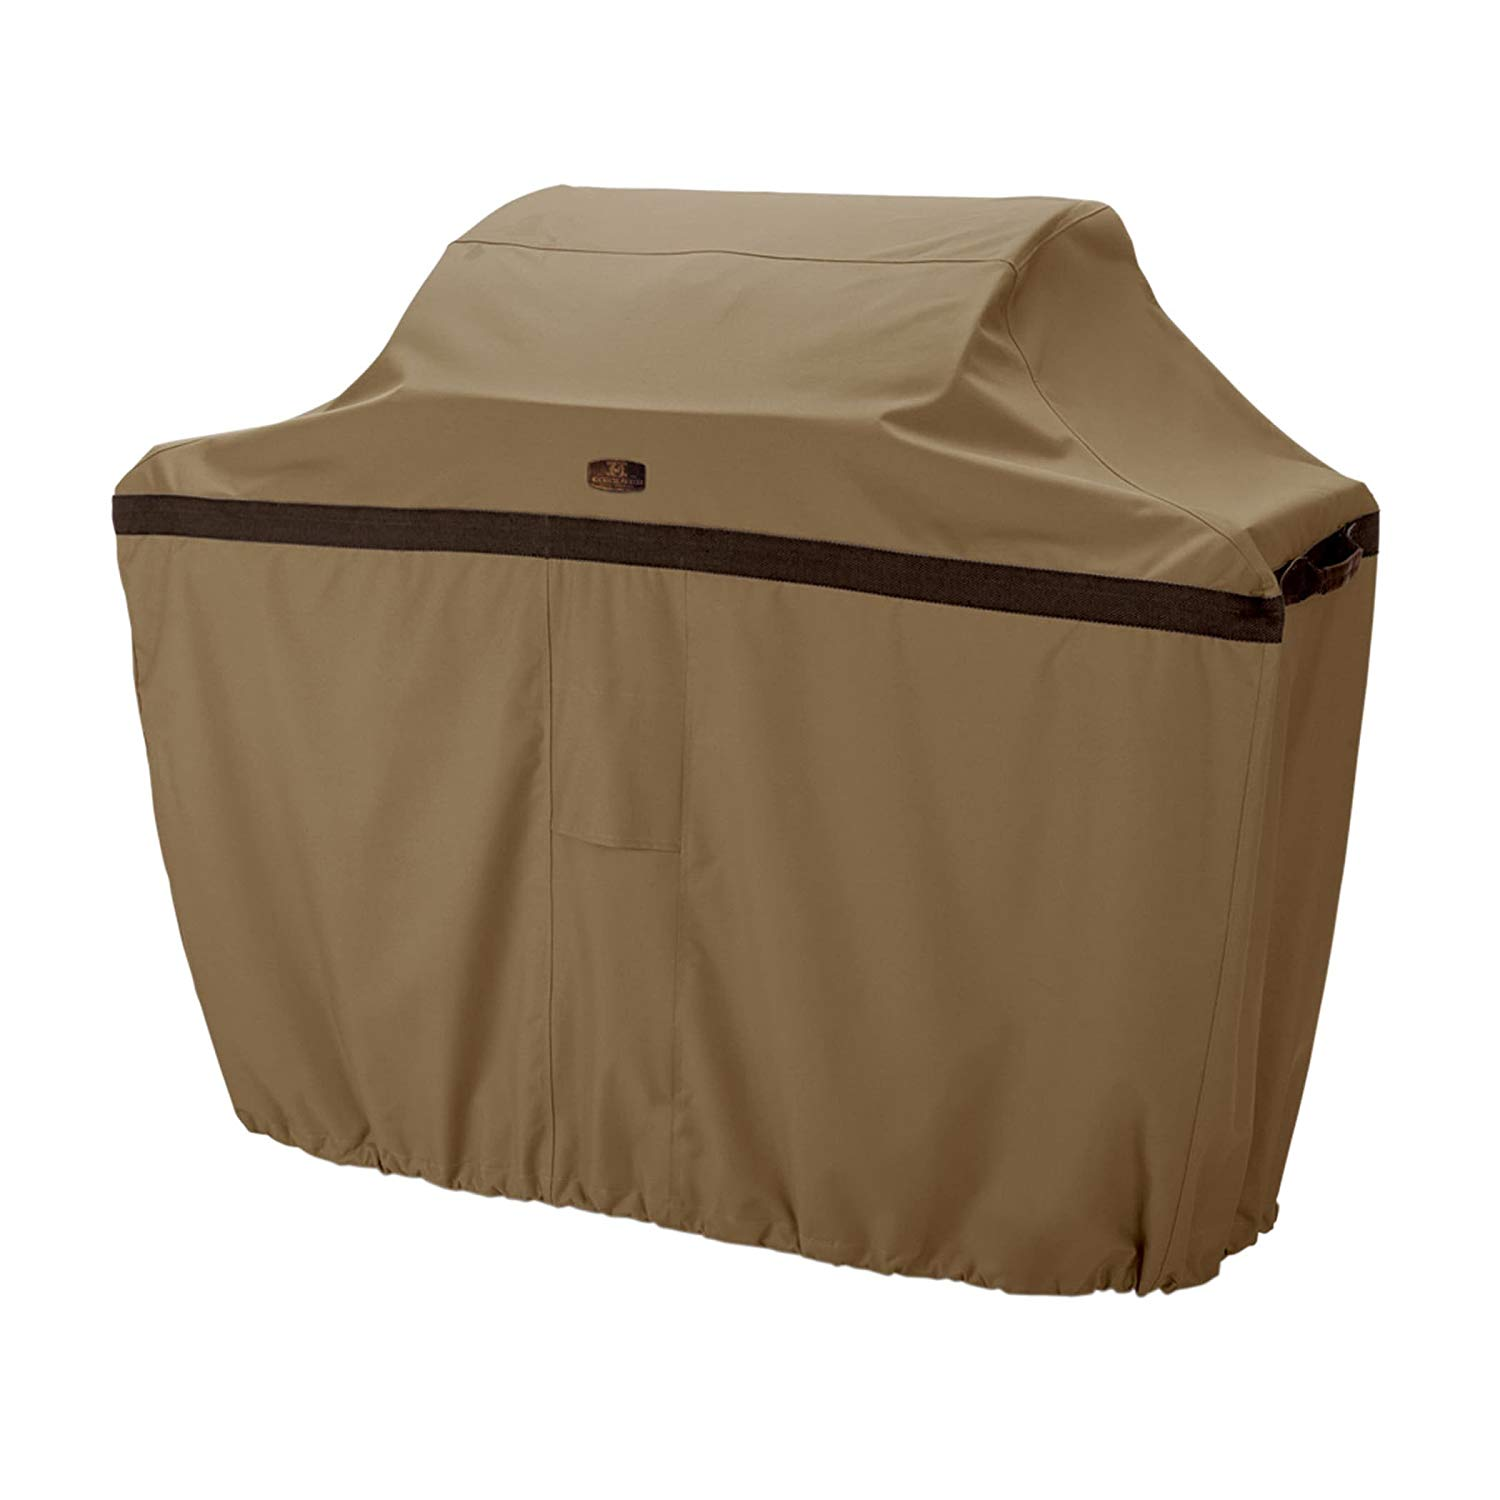 Ln 1 Piece Brown Outdoor Camping Grill Cover 64 Inch, Water Resistant BBQ Cover Waterproof Small Durable Patio Barbecue Cover Heavy Duty Material Elastic Hem Cord Padded Handles, Fabric